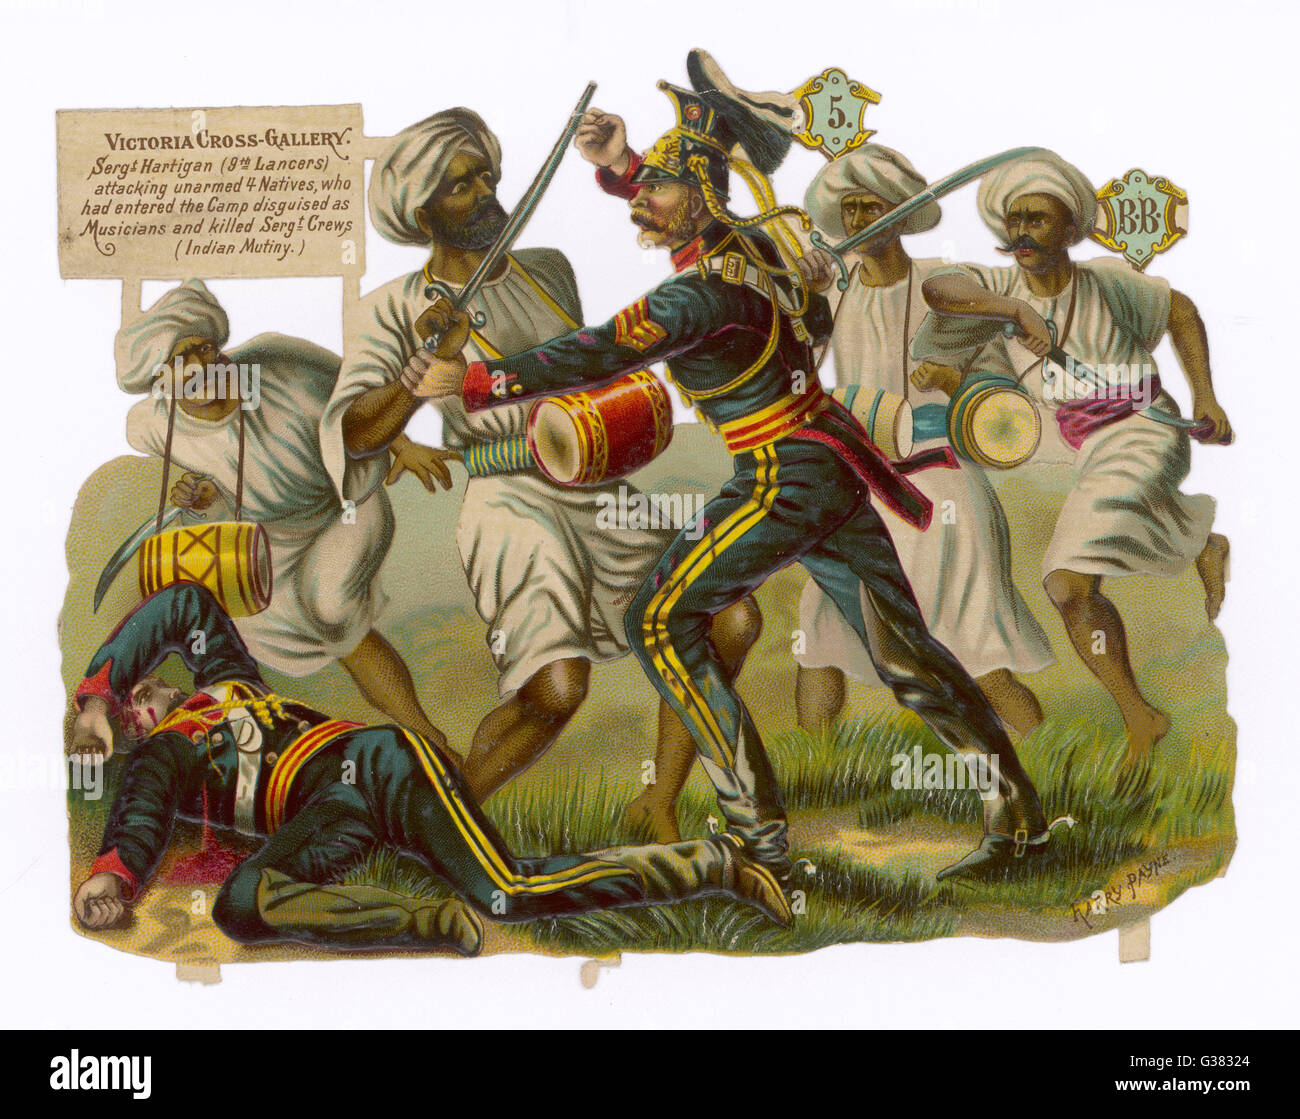 Sgt.Hartigan of the 9th  Lancers, unarmed, attacks four murderous rebels  disguised as itinerant musicians. He was Stock Photo